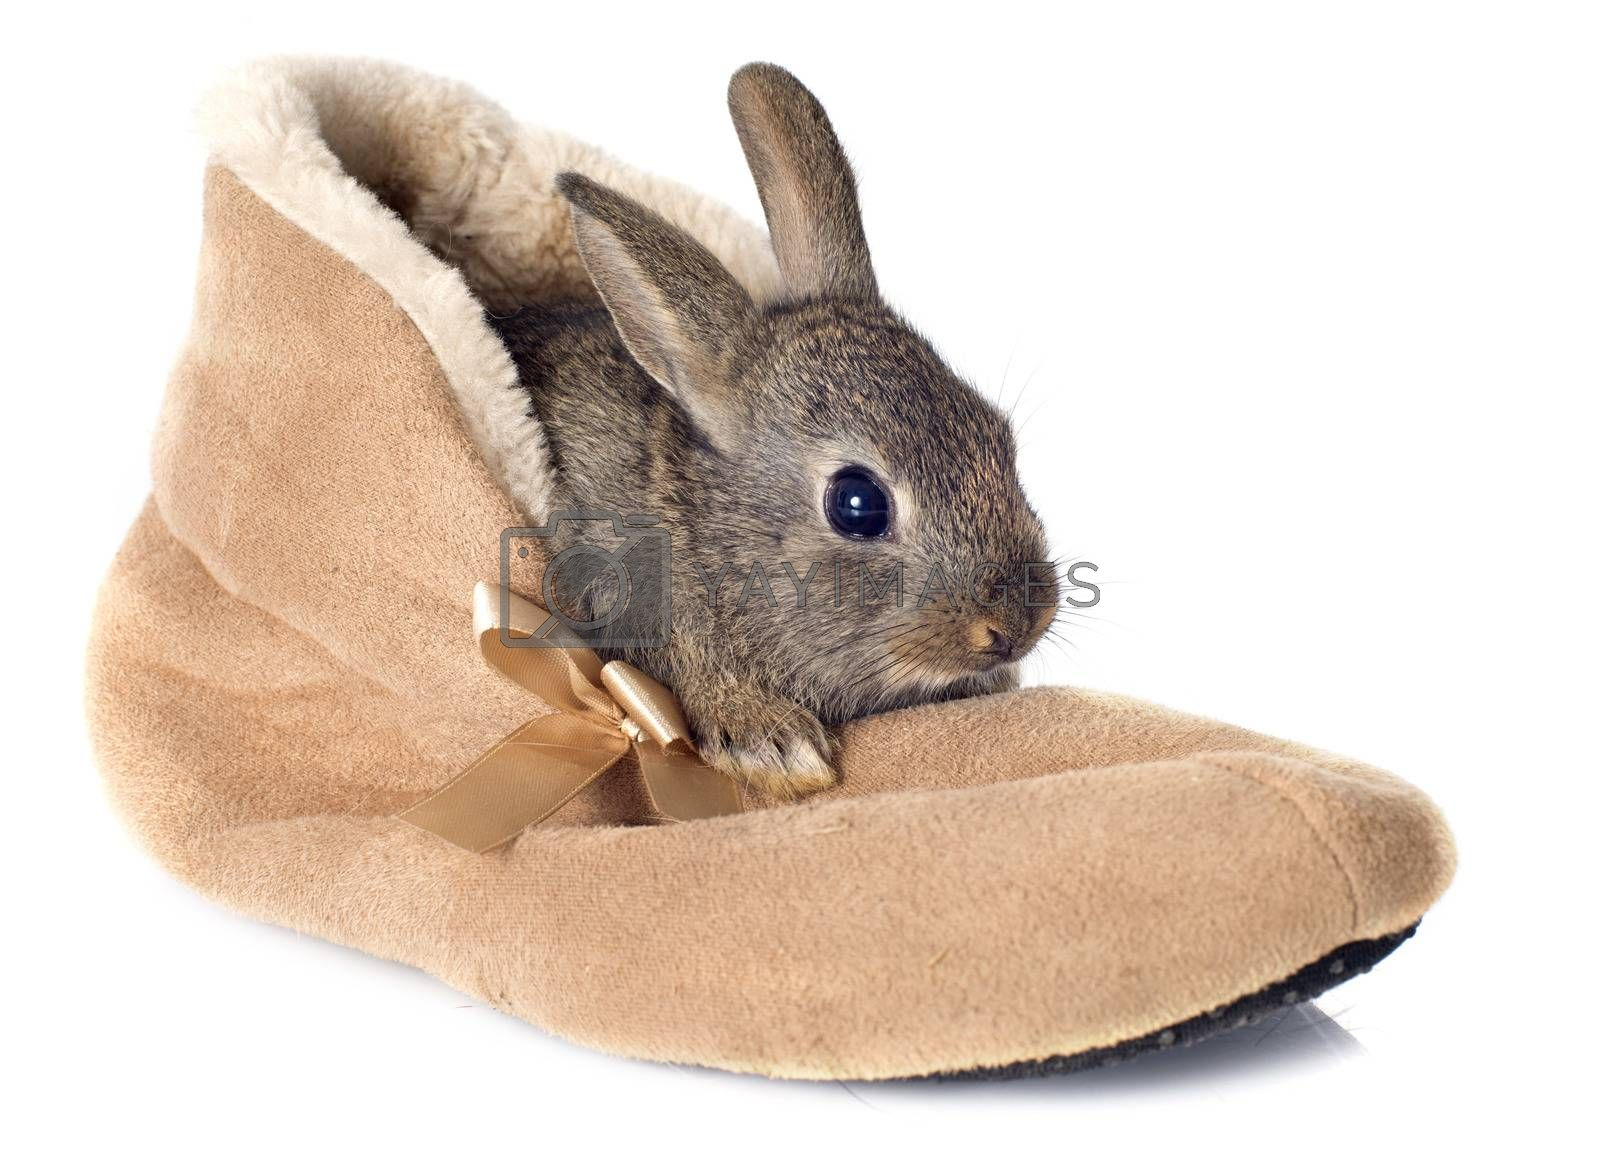 Royalty free image of European rabbit in shoes by cynoclub